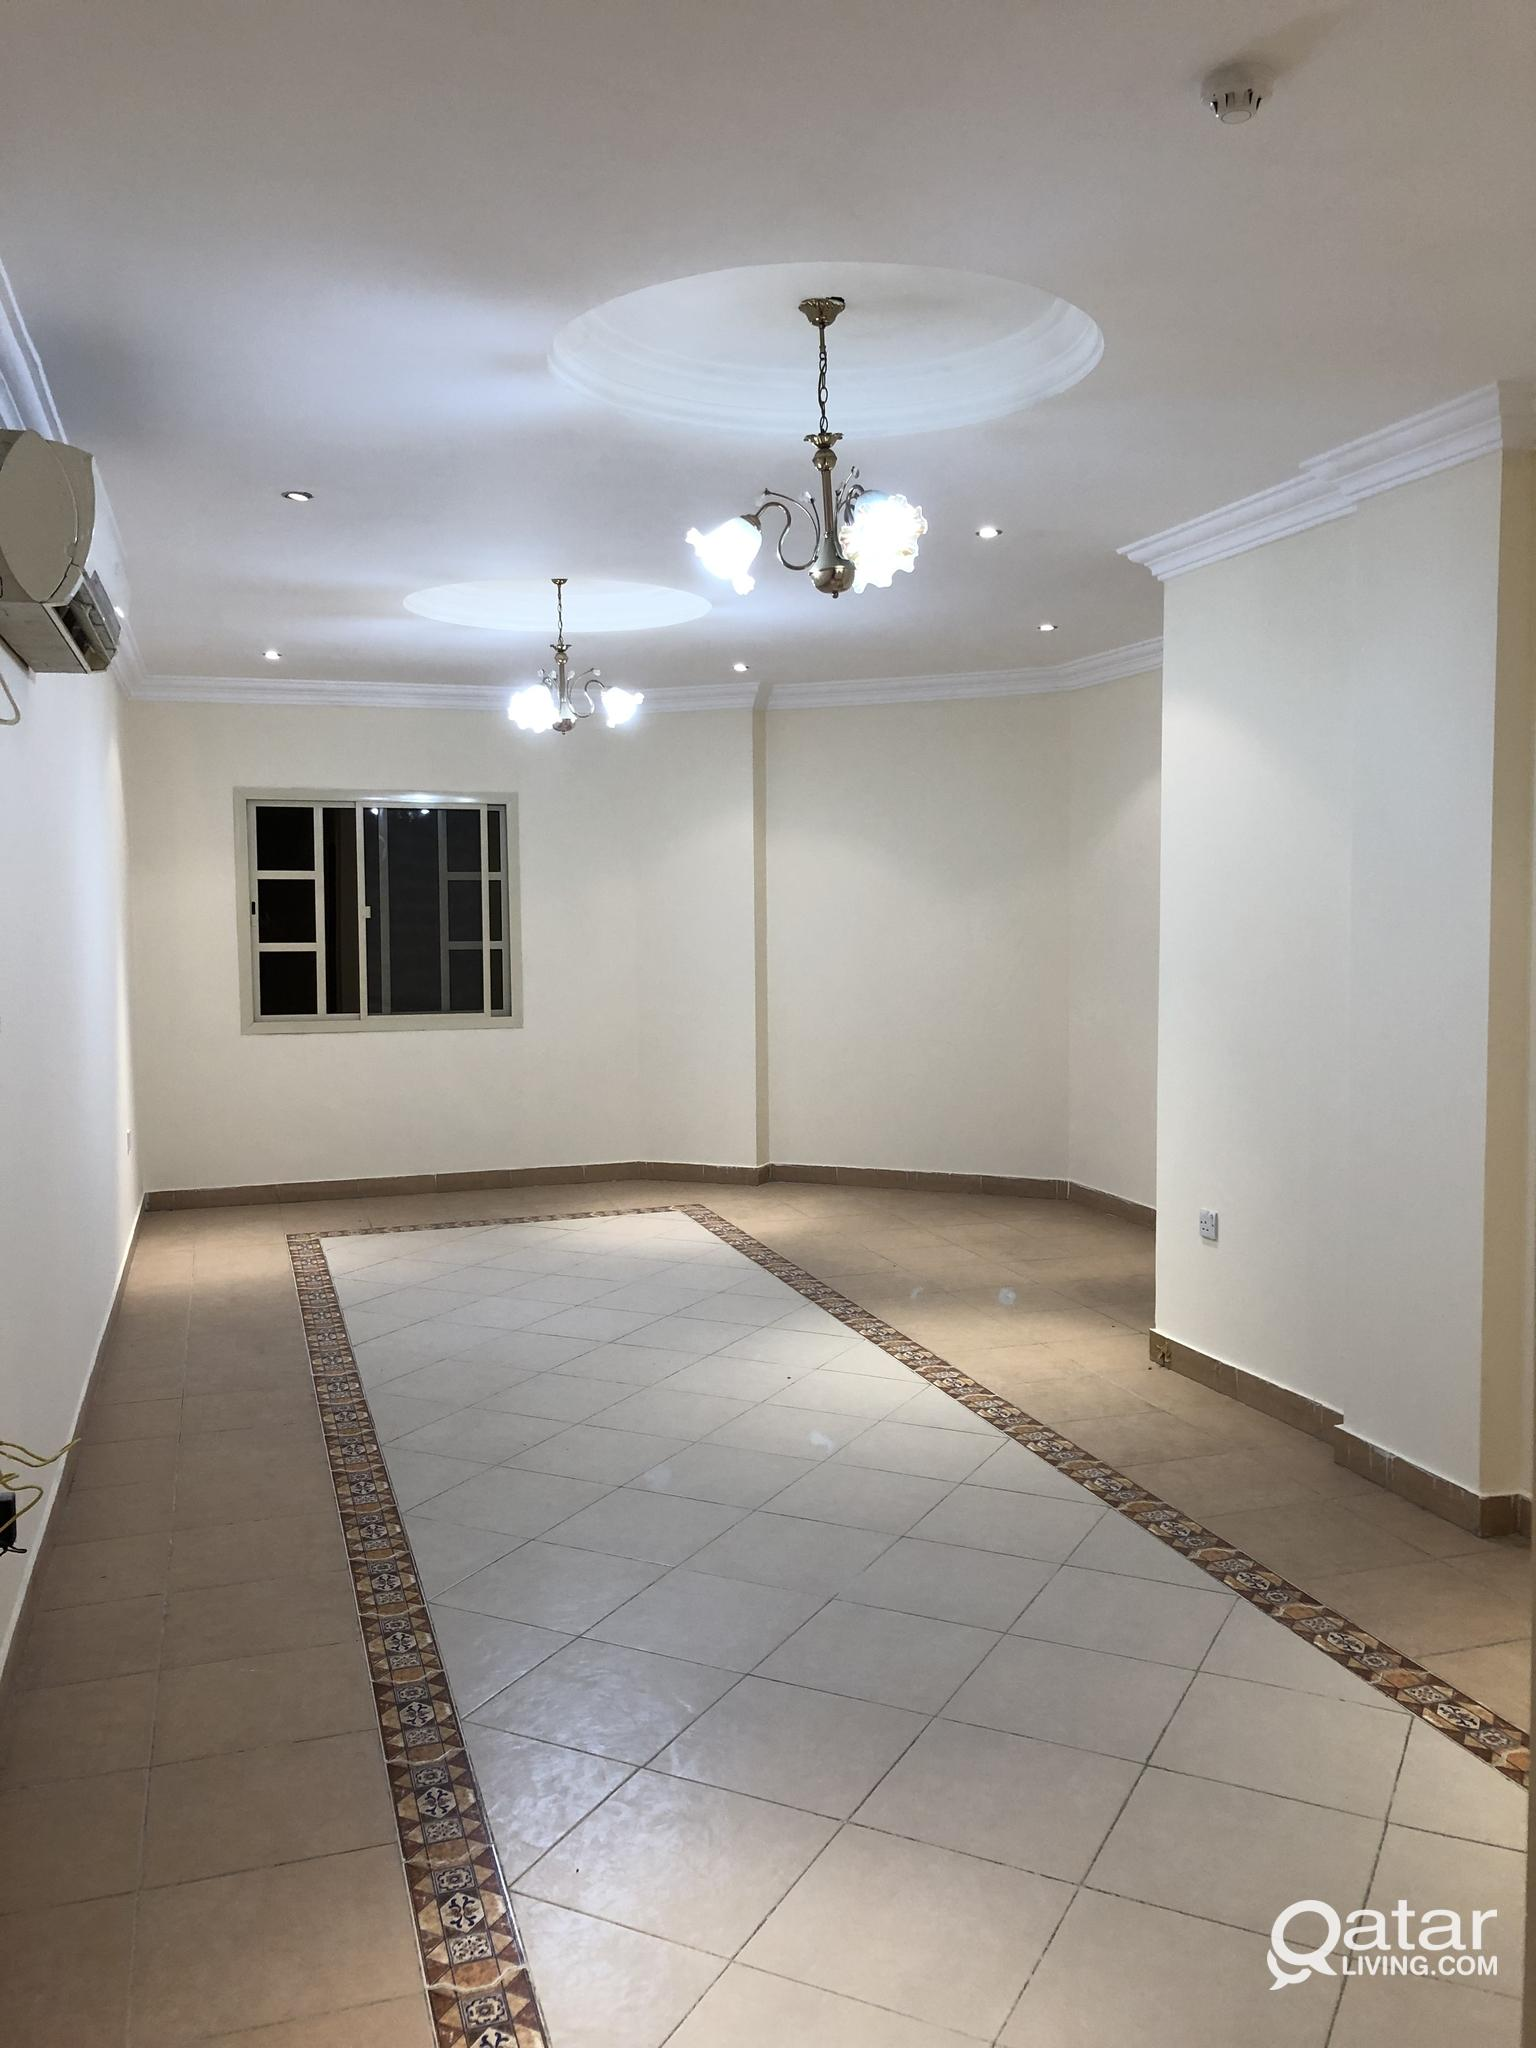 3 BEDROOM 3 WASHROOM FLAT AVAILABLE IN MANSOURA. O